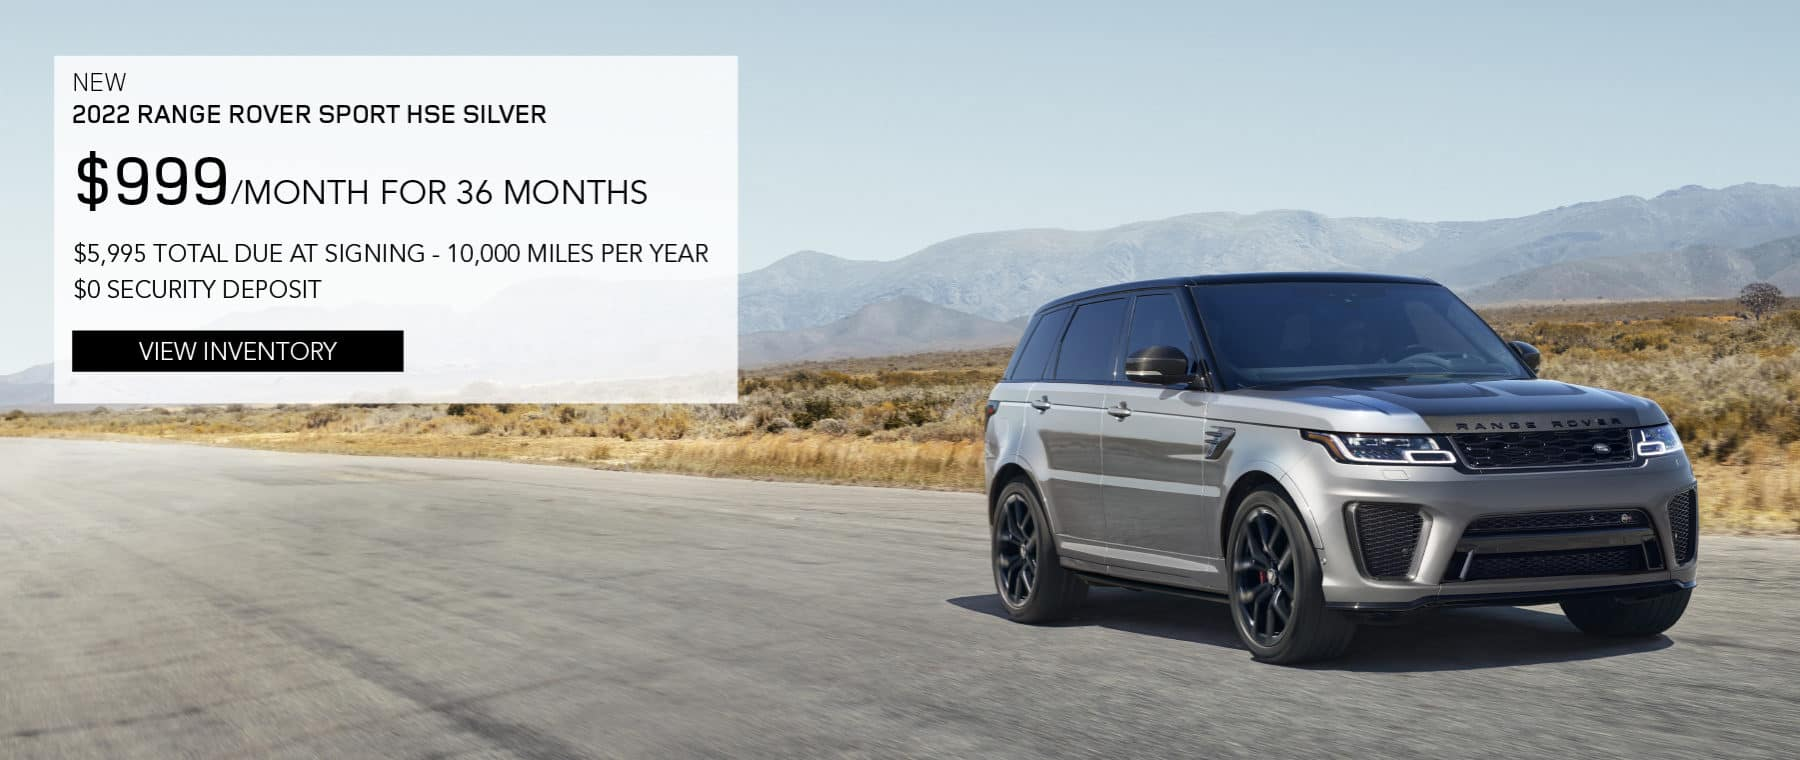 NEW 2022 RANGE ROVER SPORT HSE SILVER. $999 PER MONTH. 36 MONTH LEASE TERM. $5,995 CASH DUE AT SIGNING. $0 SECURITY DEPOSIT. 10,000 MILES PER YEAR. EXCLUDES RETAILER FEES, TAXES, TITLE AND REGISTRATION FEES, PROCESSING FEE AND ANY EMISSION TESTING CHARGE. ENDS 8/2/2021. VIEW INVENTORY. SILVER RANGE ROVER SPORT DRIVING THROUGH DESERT.